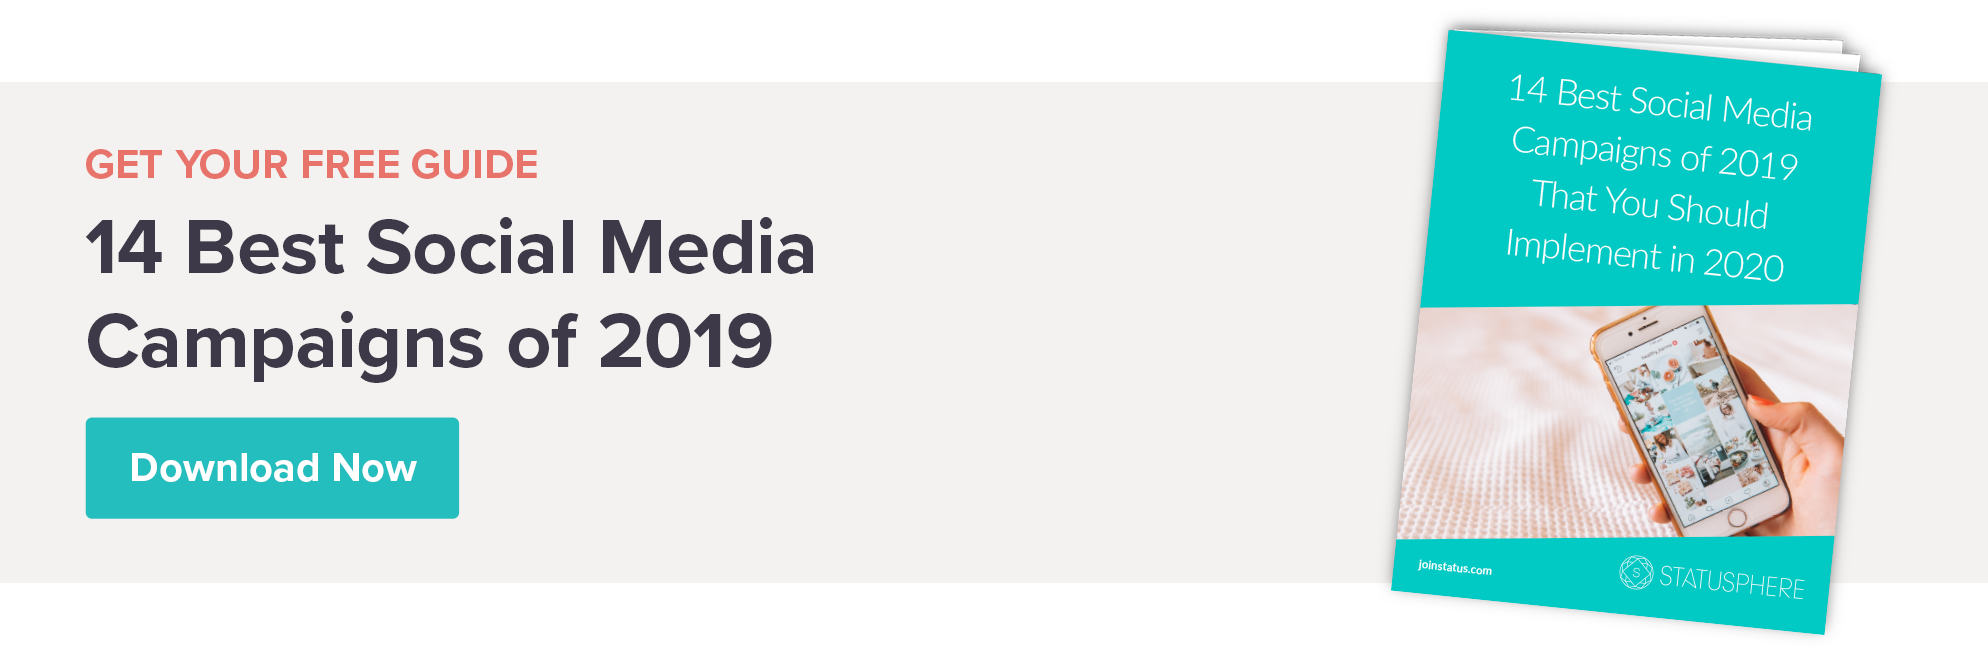 GUIDE 15 - 14 Best Social Media Campaigns of 2019 That You Should Implement in 2020